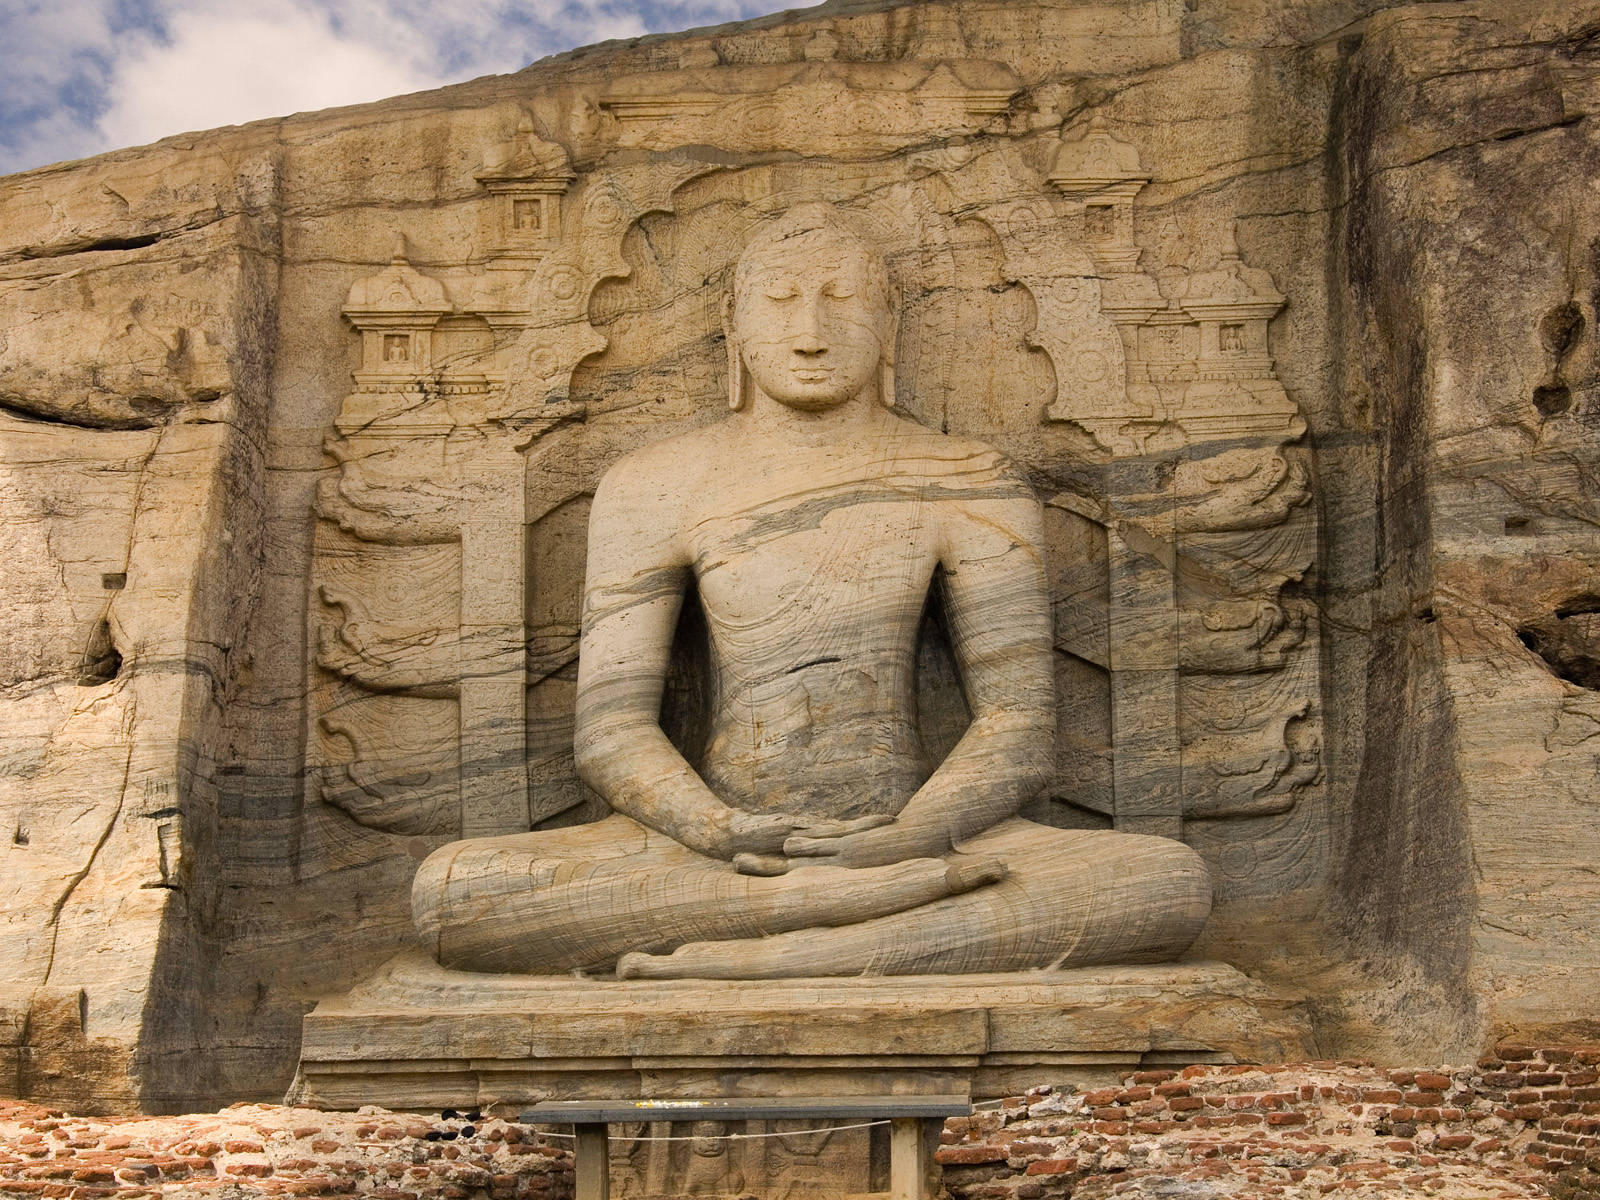 http://www.thehistoryhub.com/wp-content/uploads/2014/08/Polonnaruwa-Gal-Vihara-Buddhist-Statue-Pictures.jpg